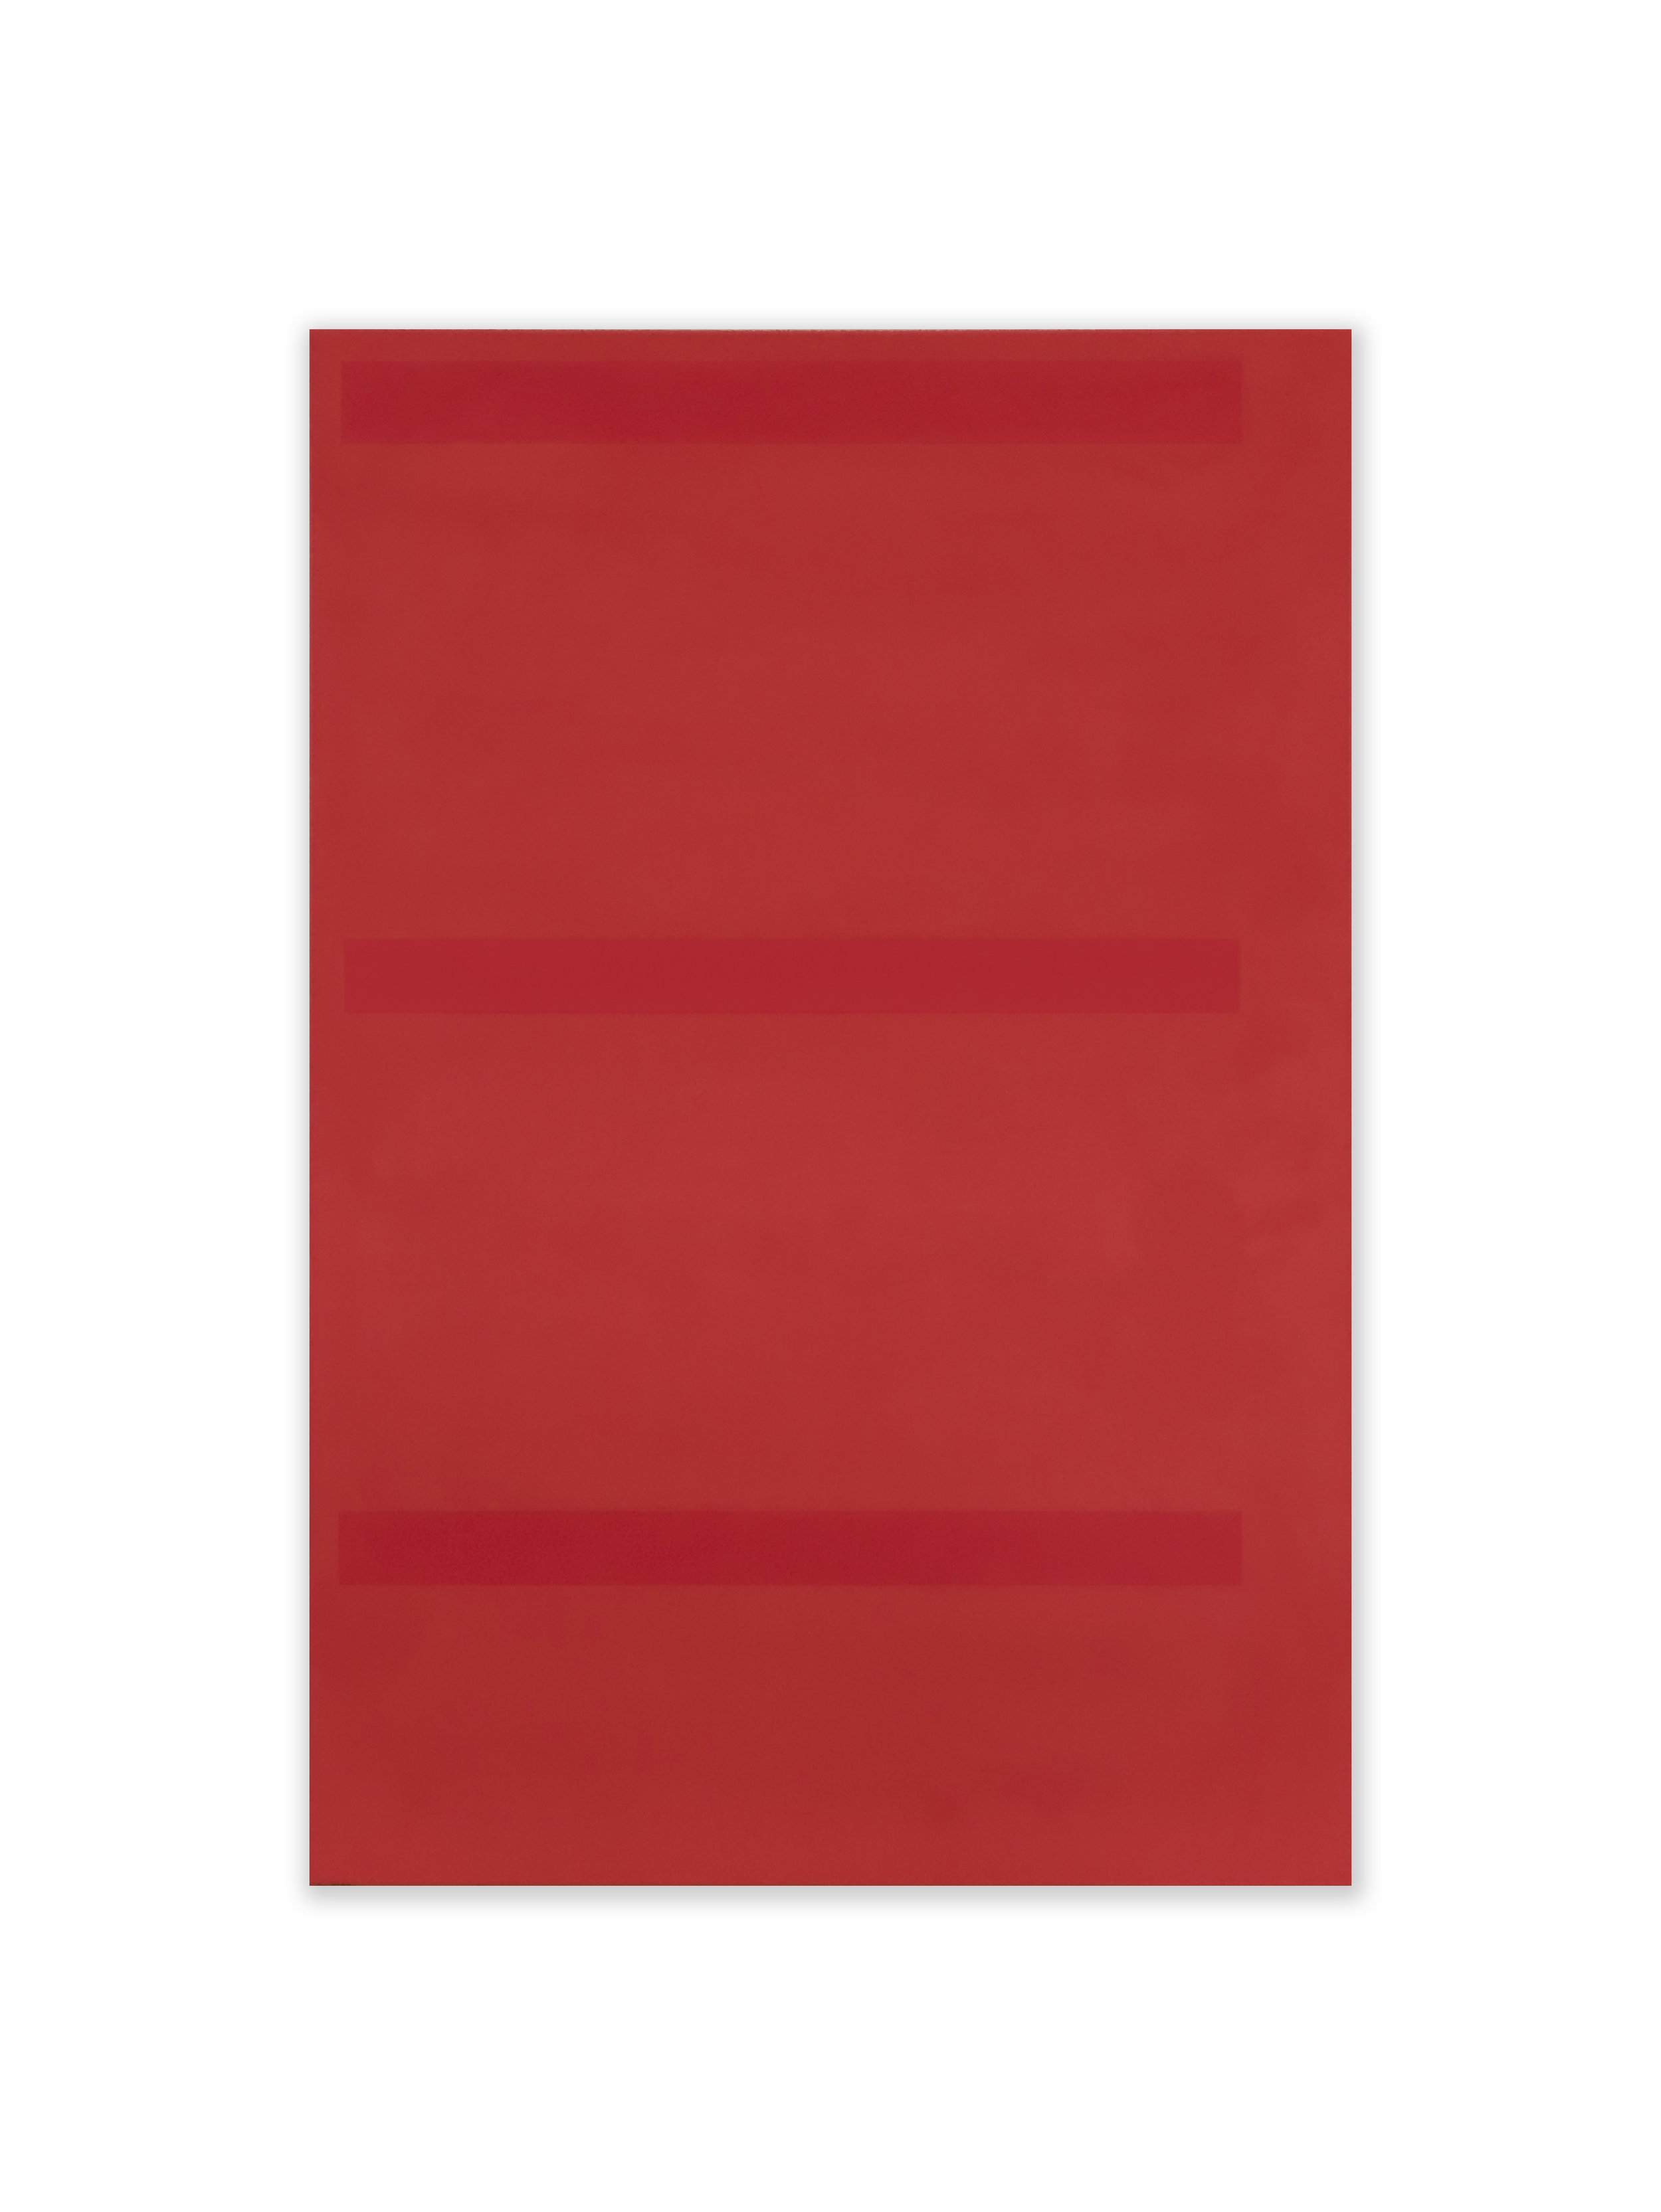 Lined Space Red